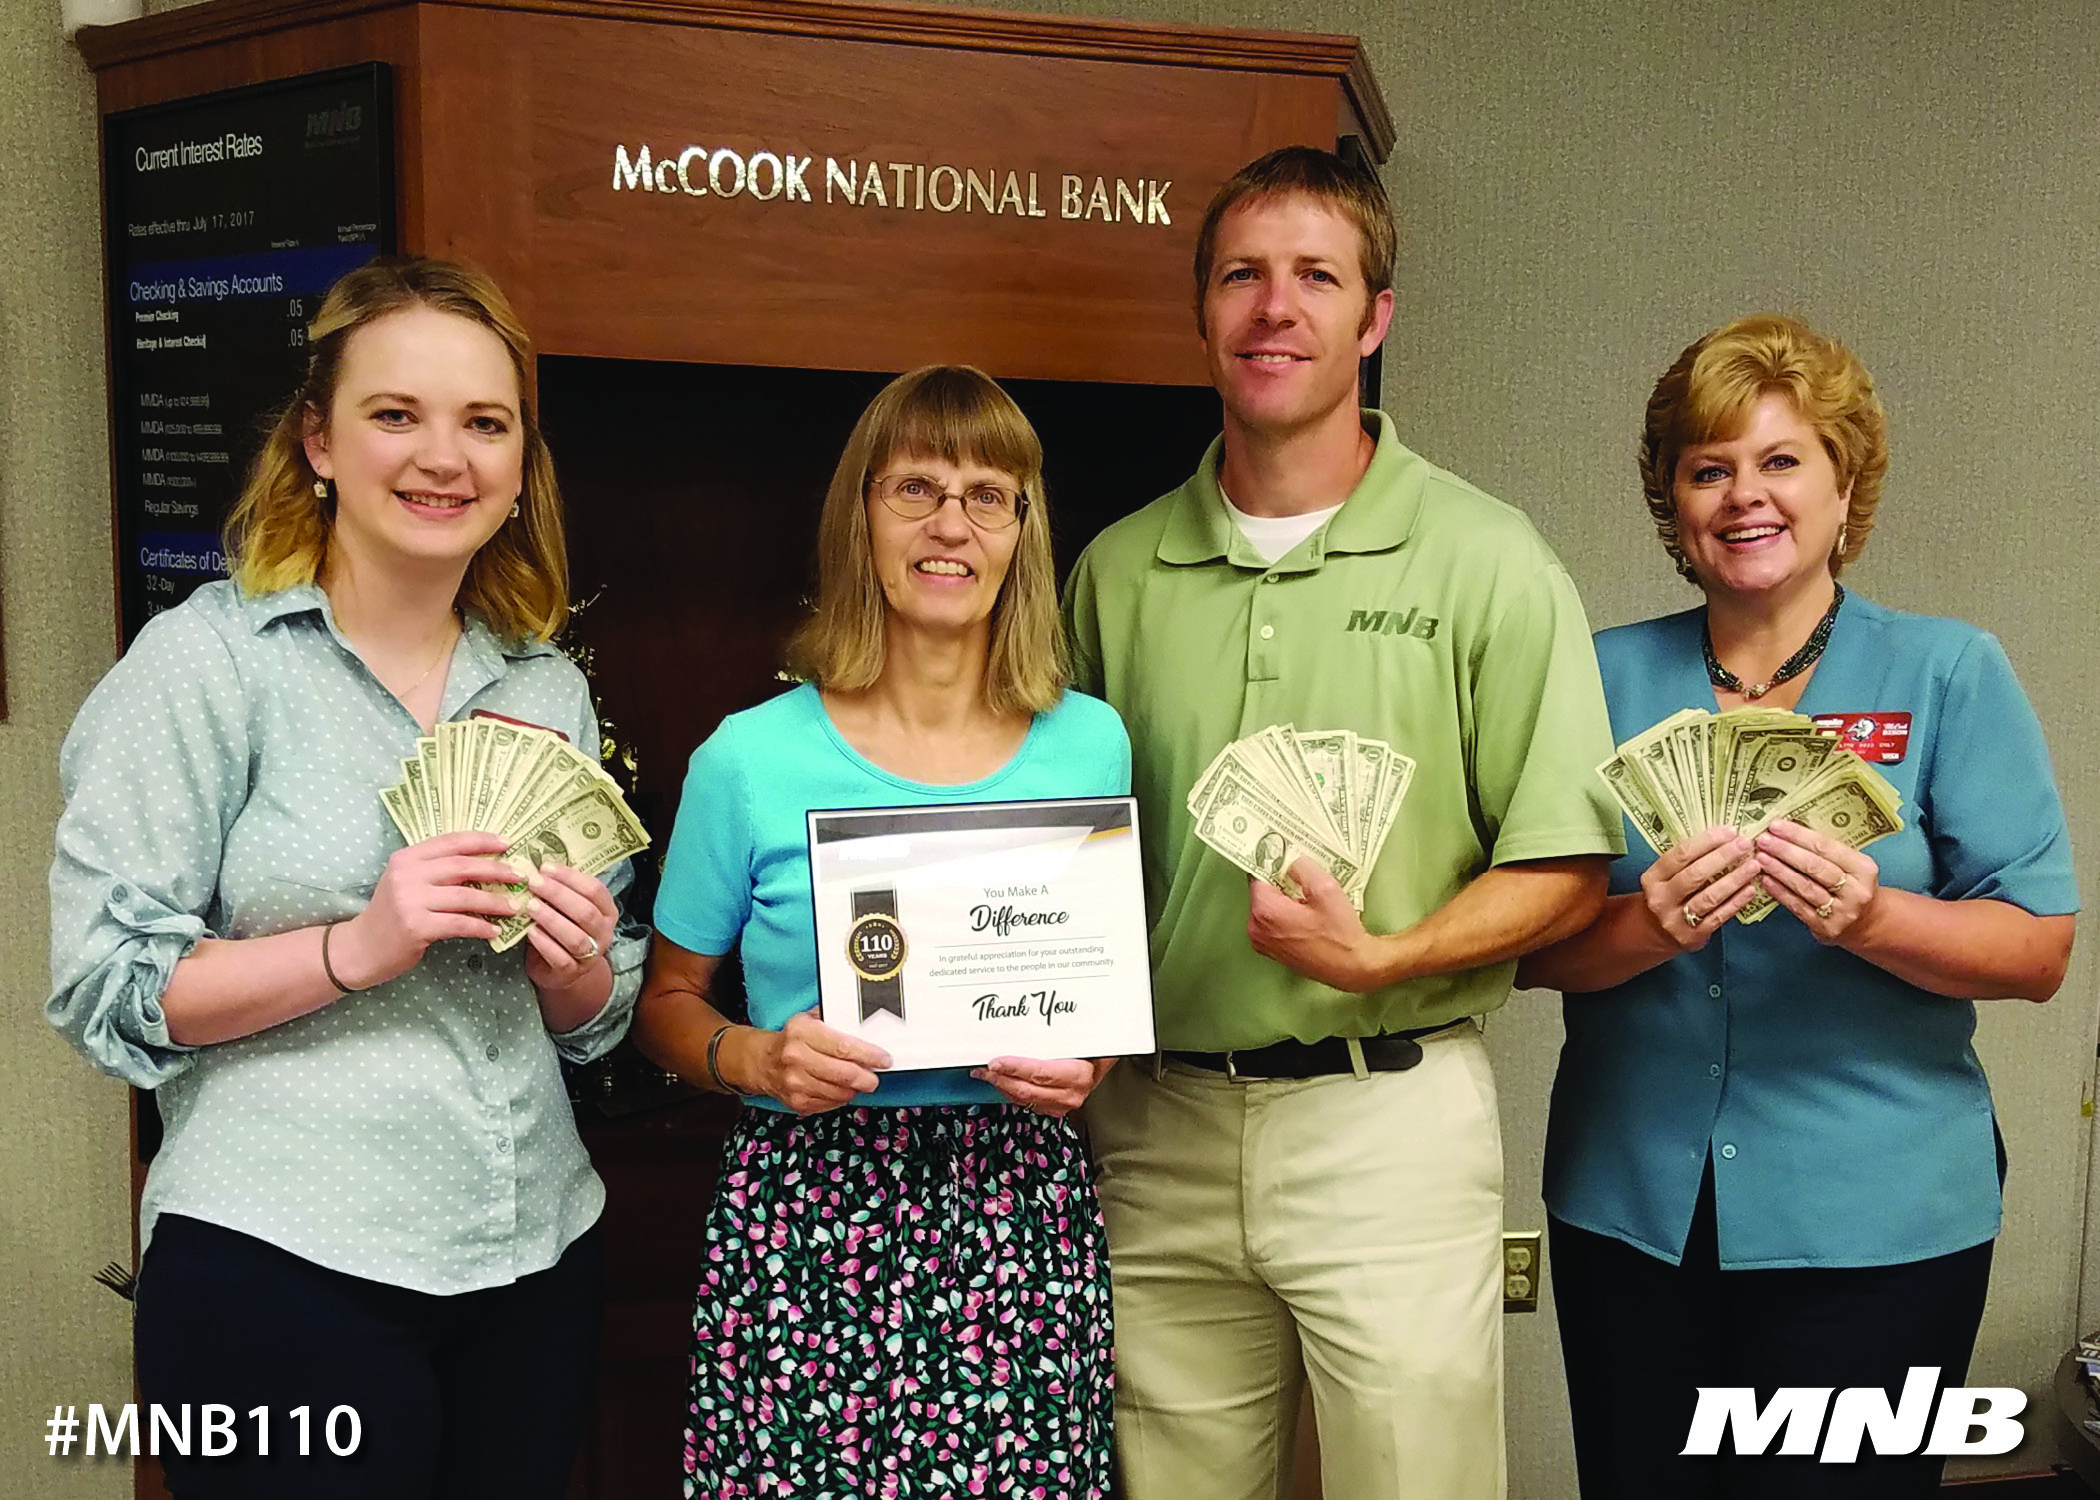 MNB presents $110 donation to Southwest Nebraska Family Resource Center